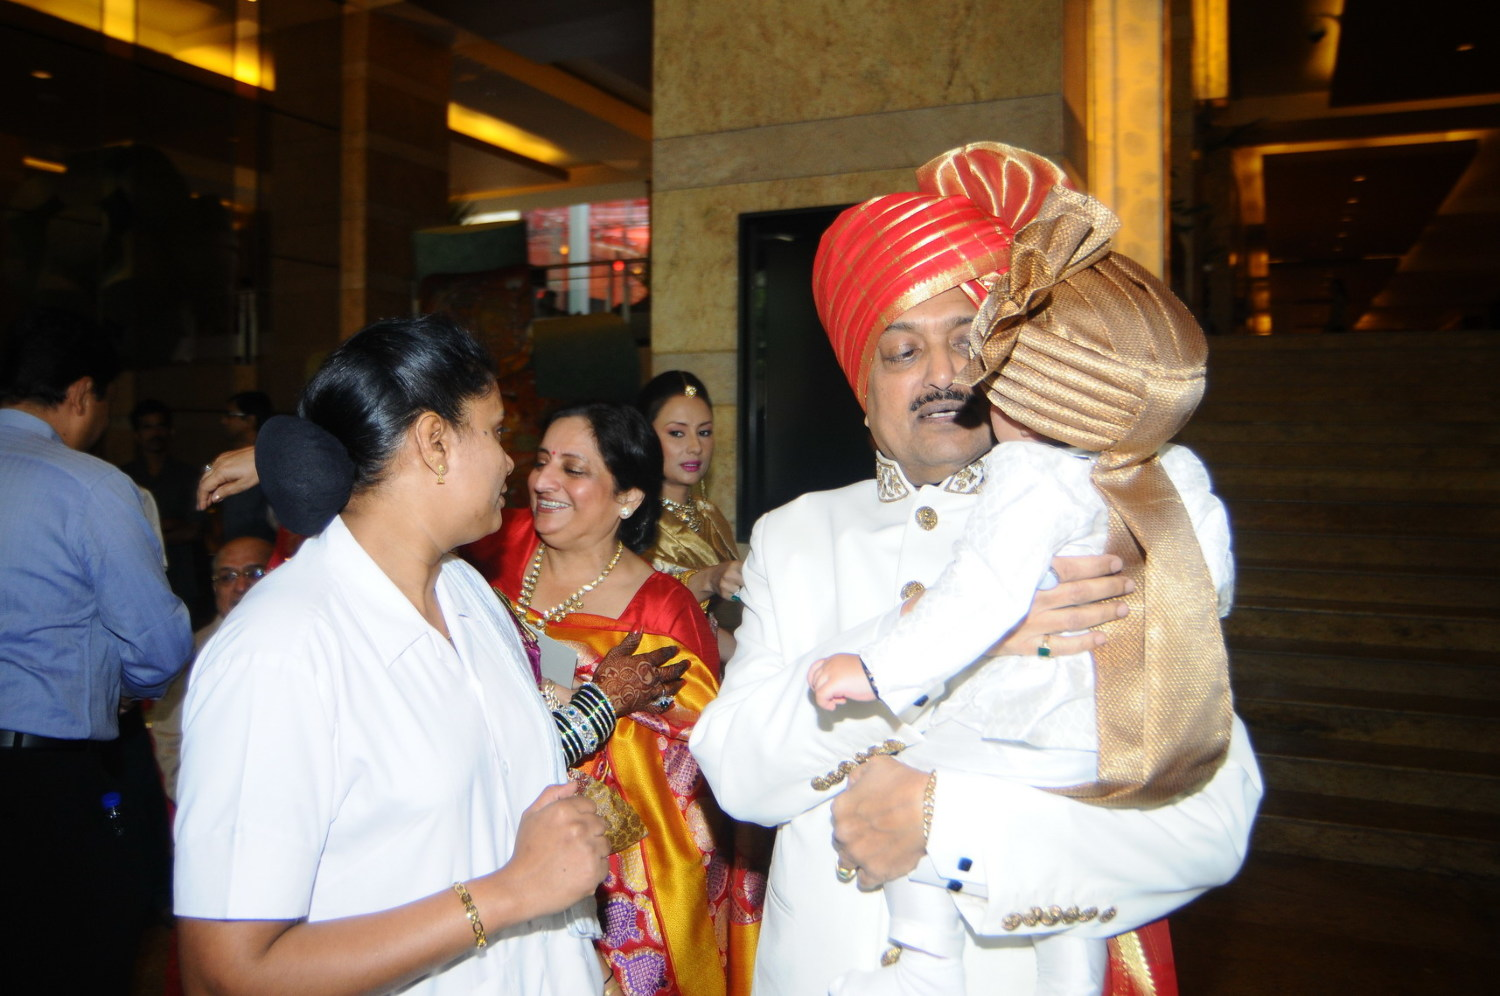 Union Minister Vilasrao Deshmukh Playing With His Grandson At The Wedding Ceremony Of His Son